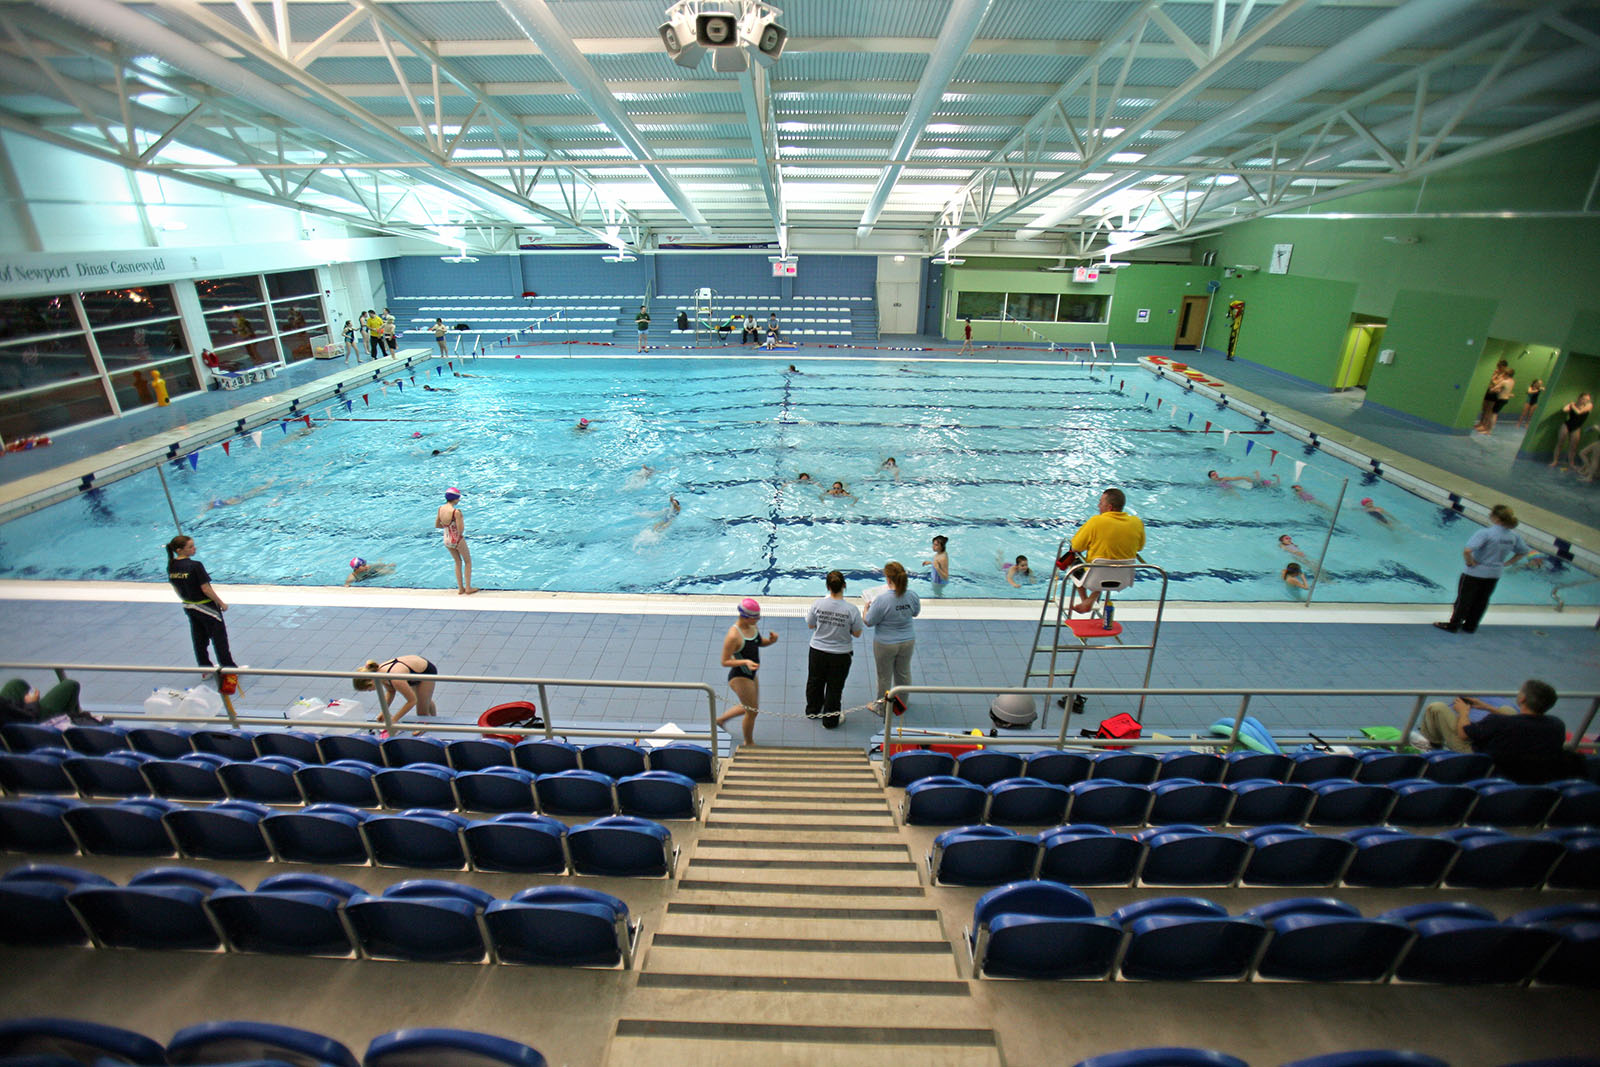 Indoor swimming pool at regional pool and tennis centre